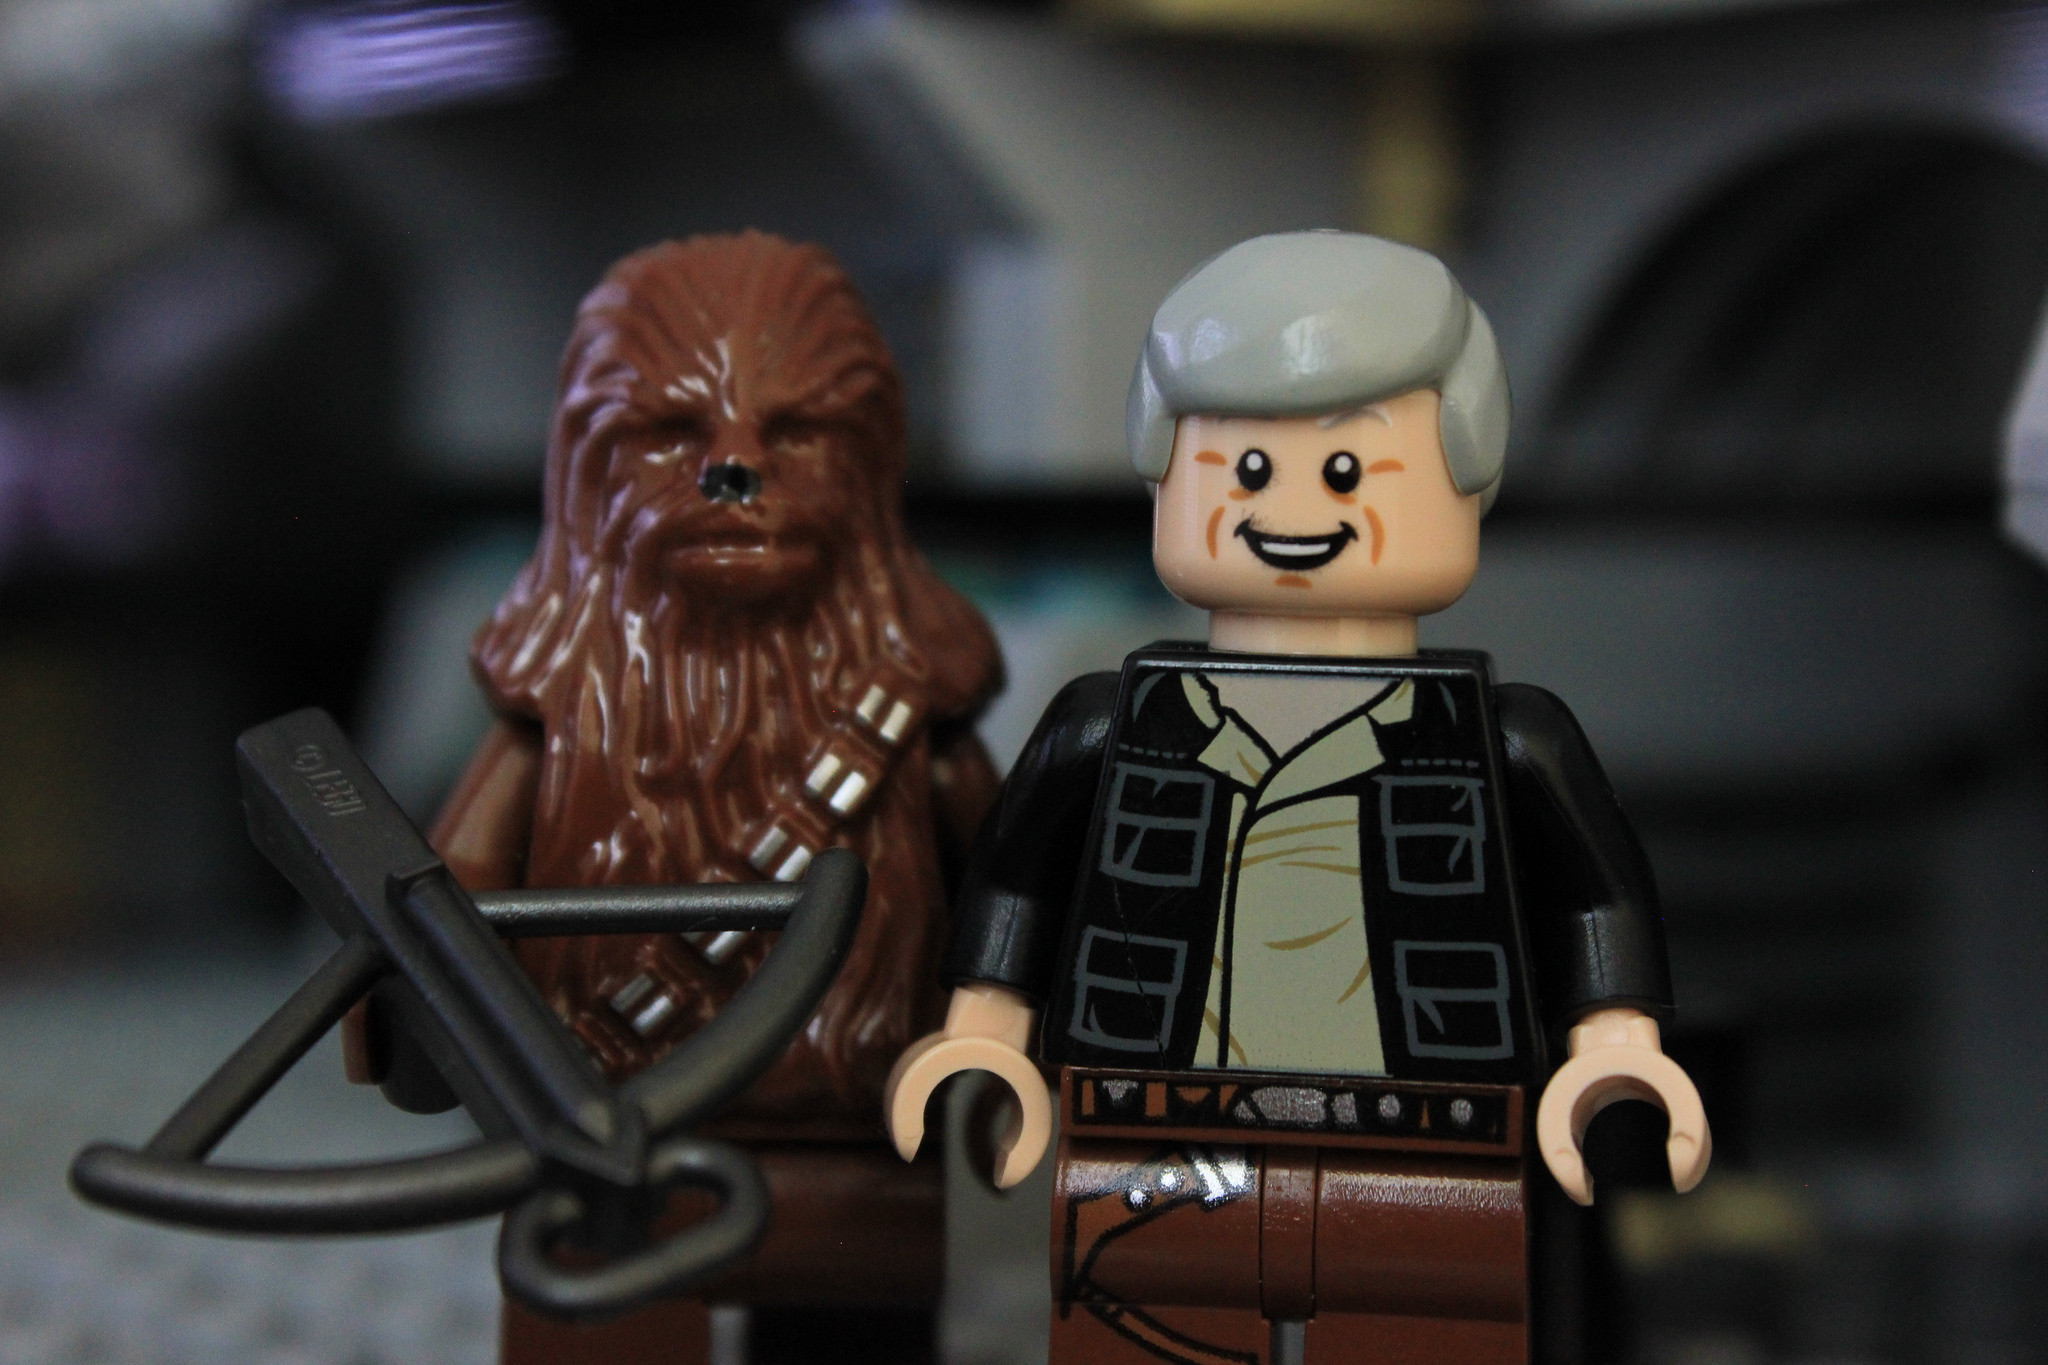 2048x1365  Wallpaper lego star wars, the force awakens, han solo, chewbacca